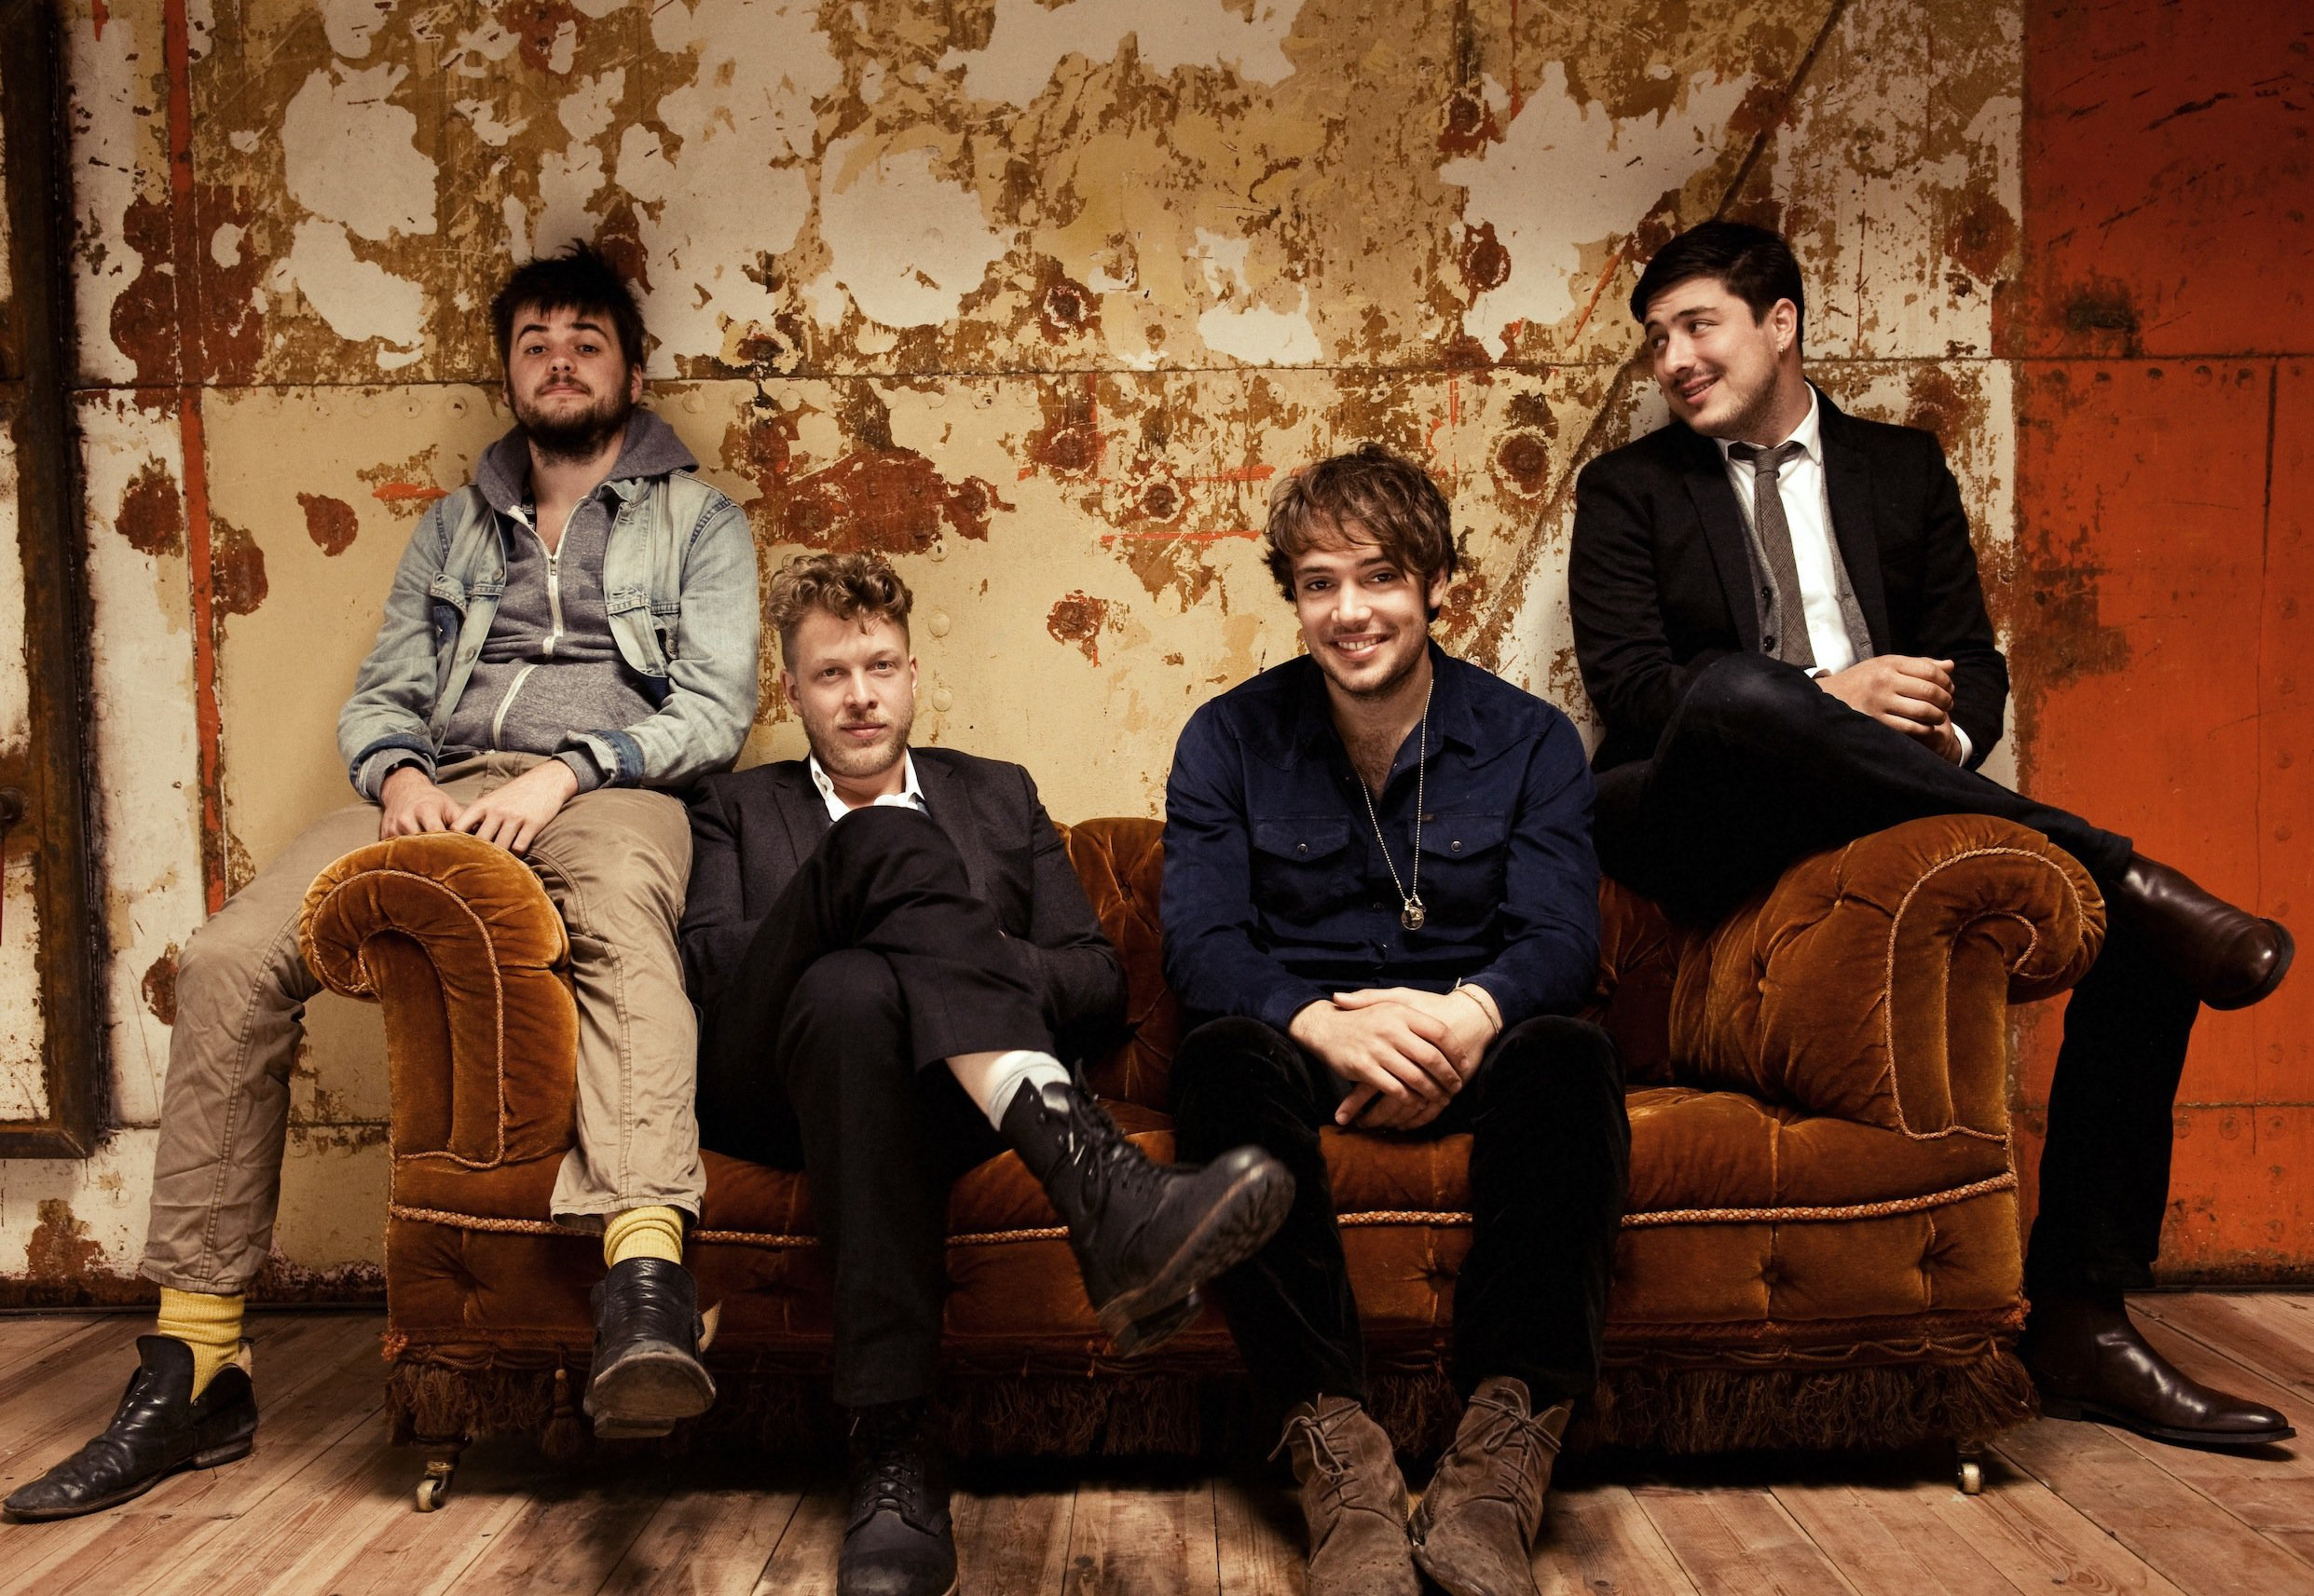 mumford and sons i will wait mp3 song free download